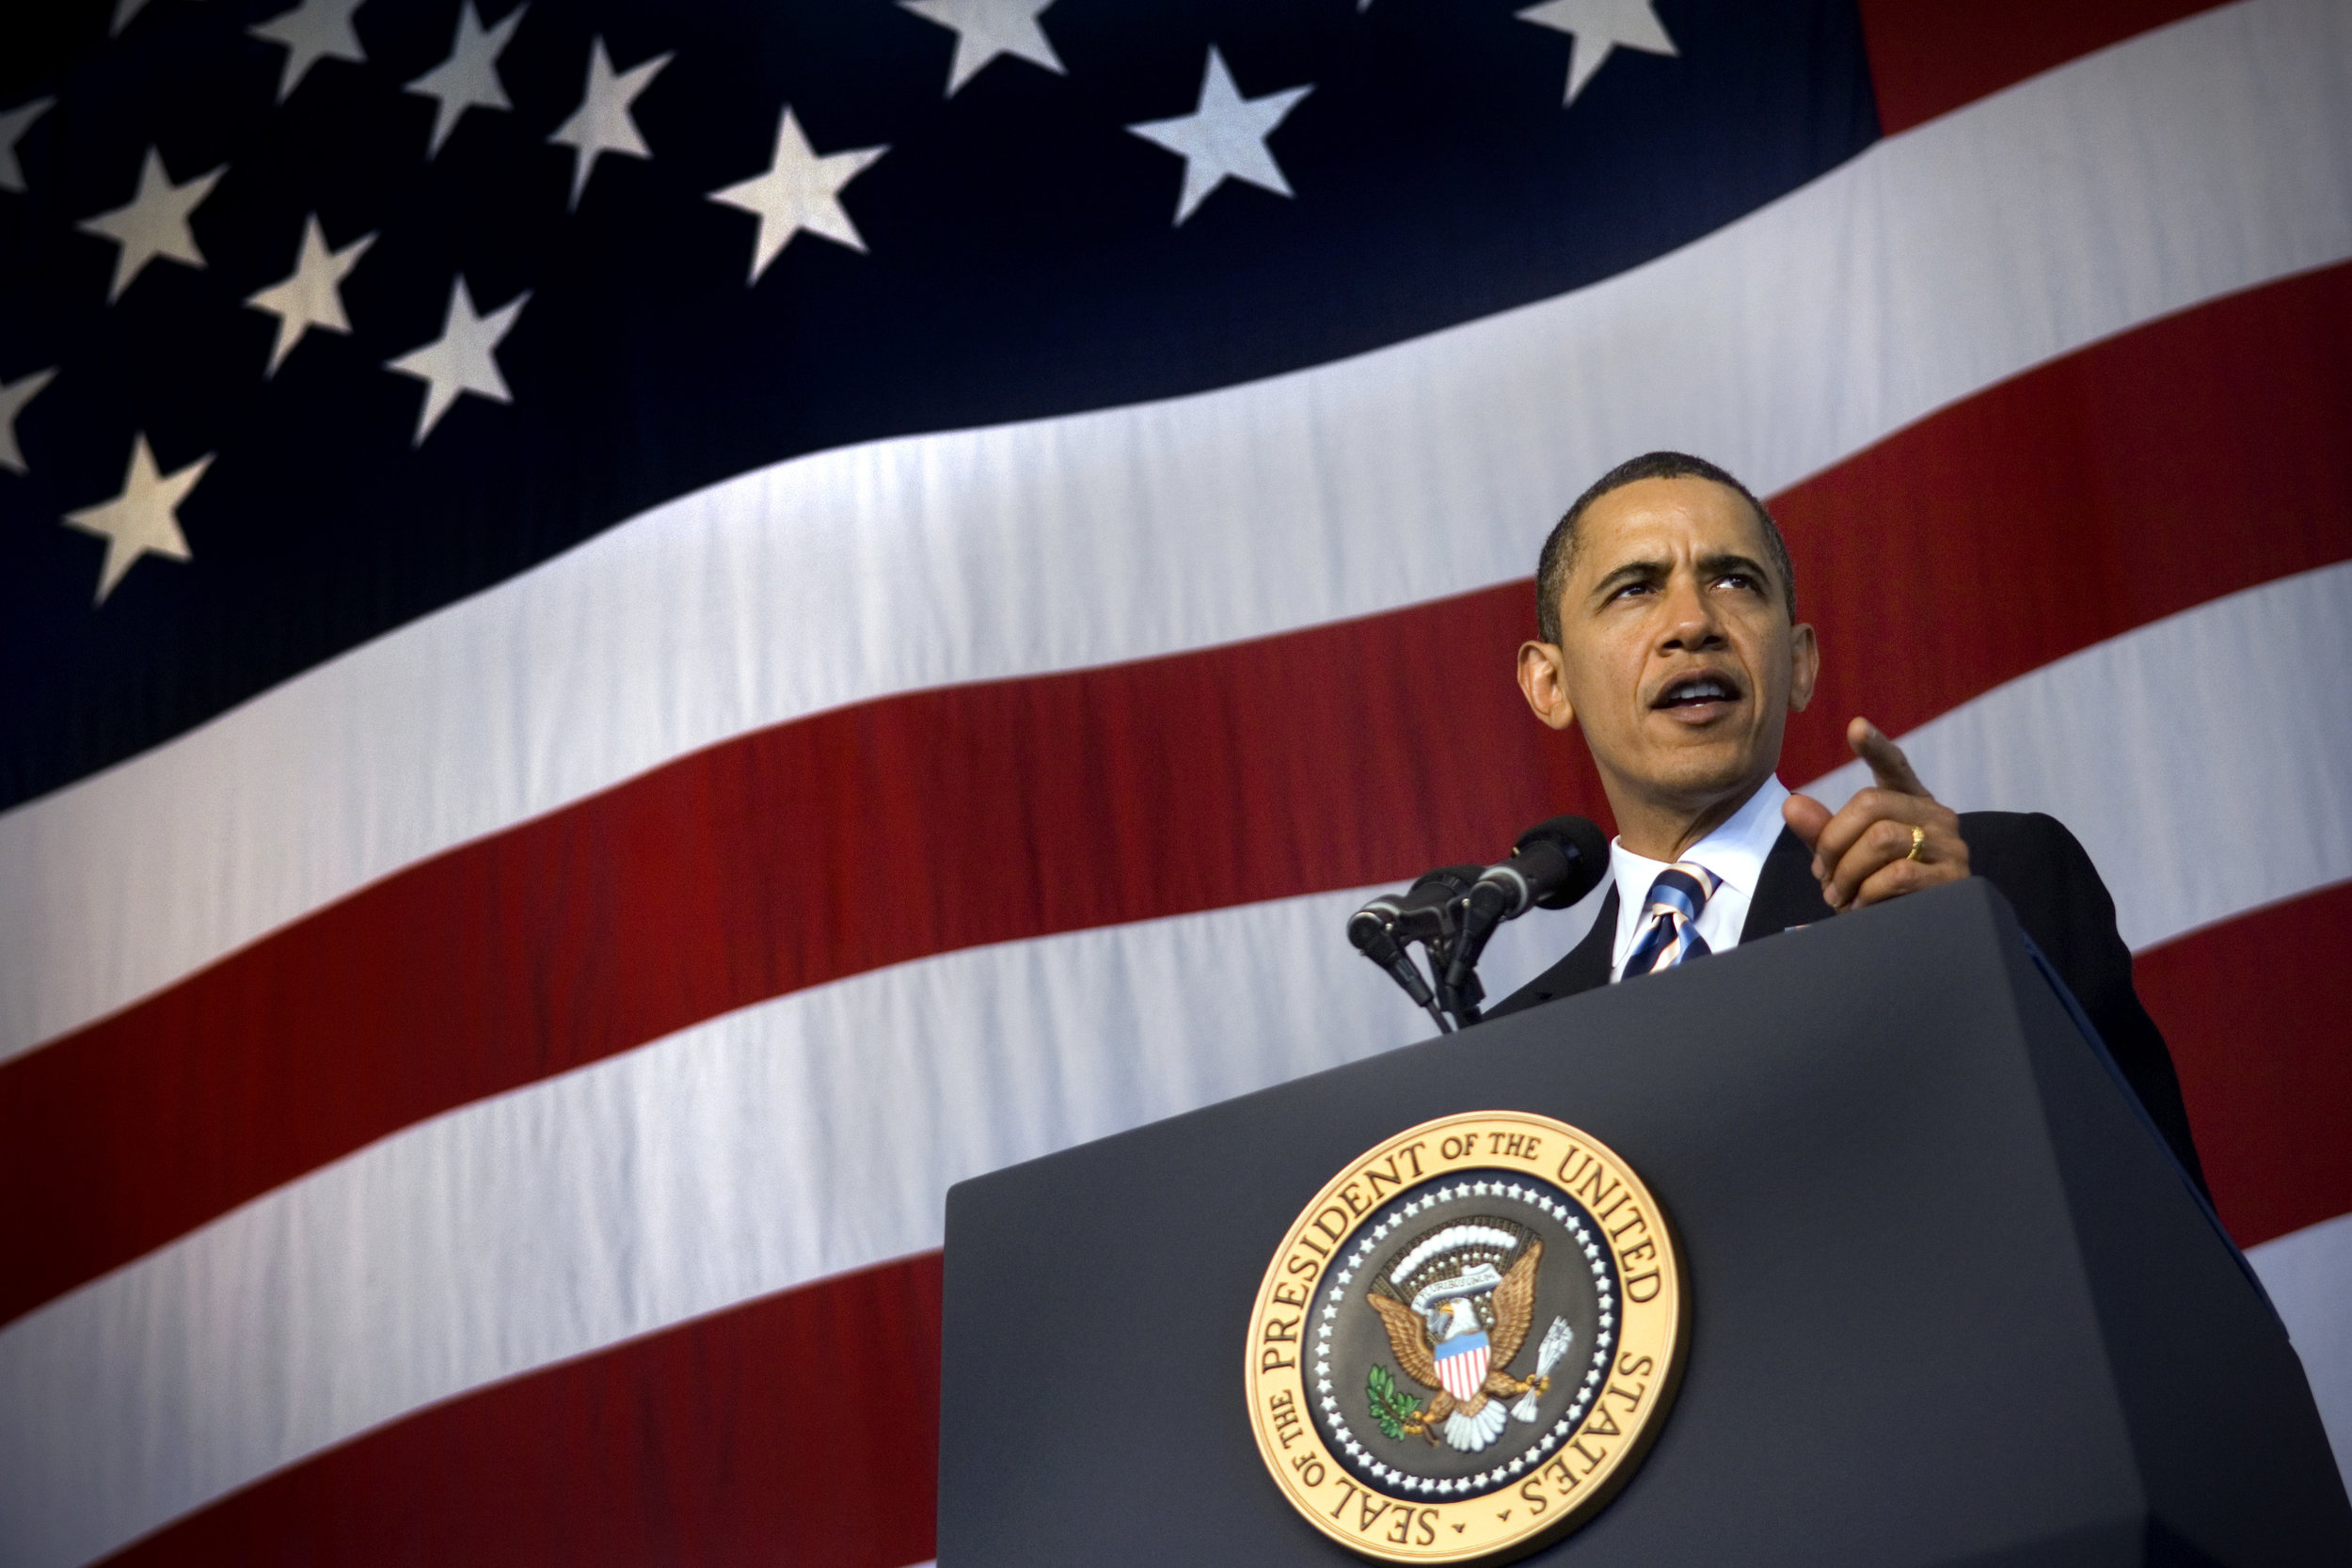 President Barack Obama: A true hero and the people's president Image credit:Kevin S. O'Brien